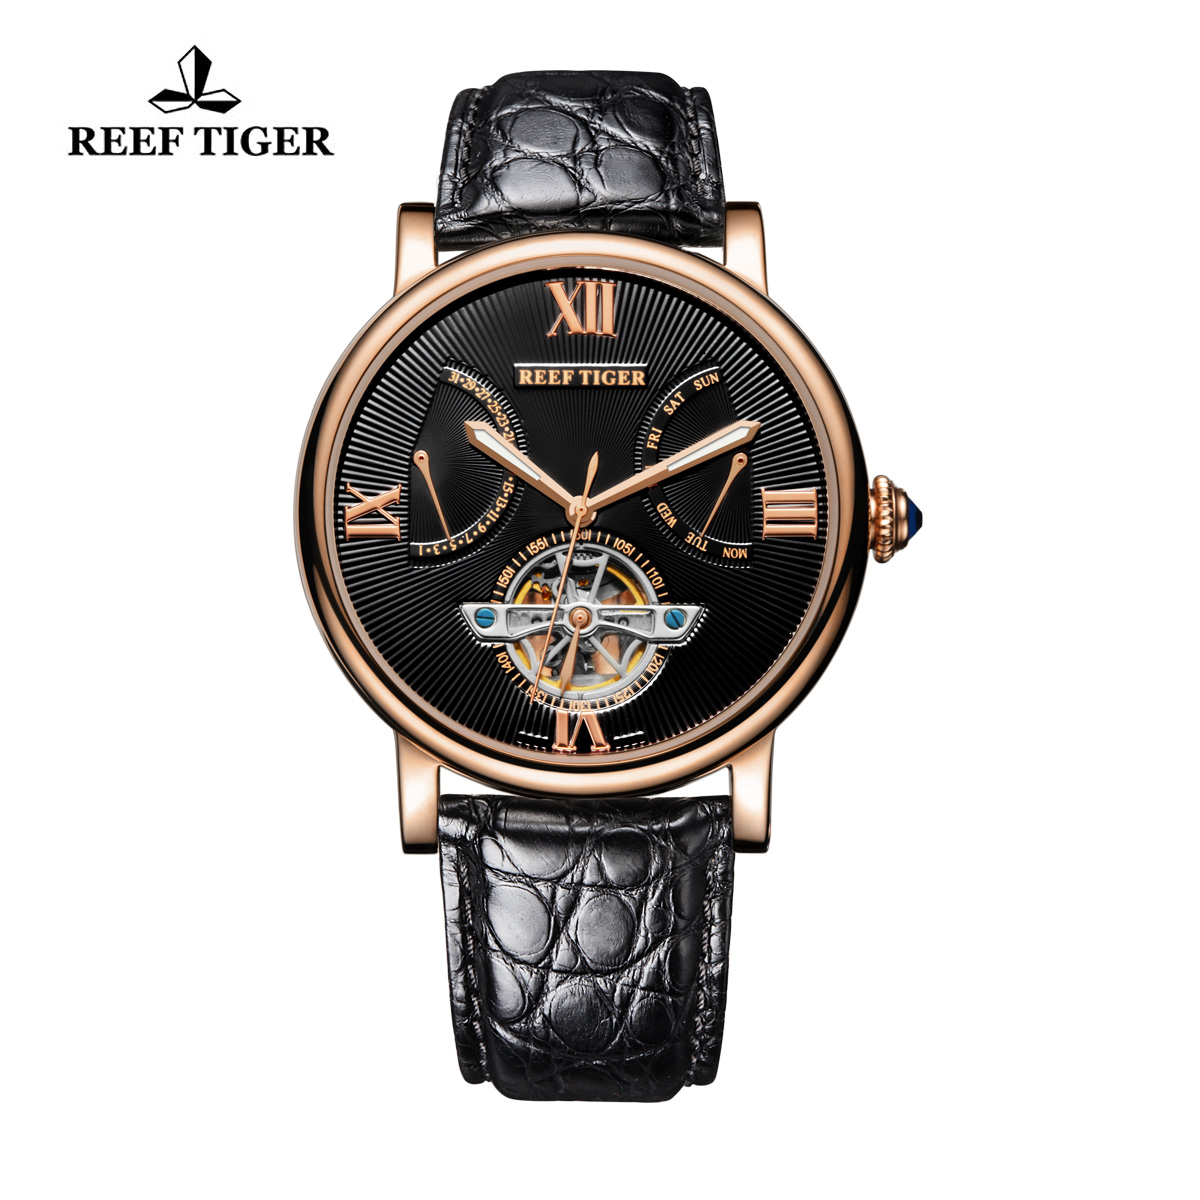 Reef Tiger Luxury Tourbillon Watch with Day Date Black Dial Alligator Strap RGA191